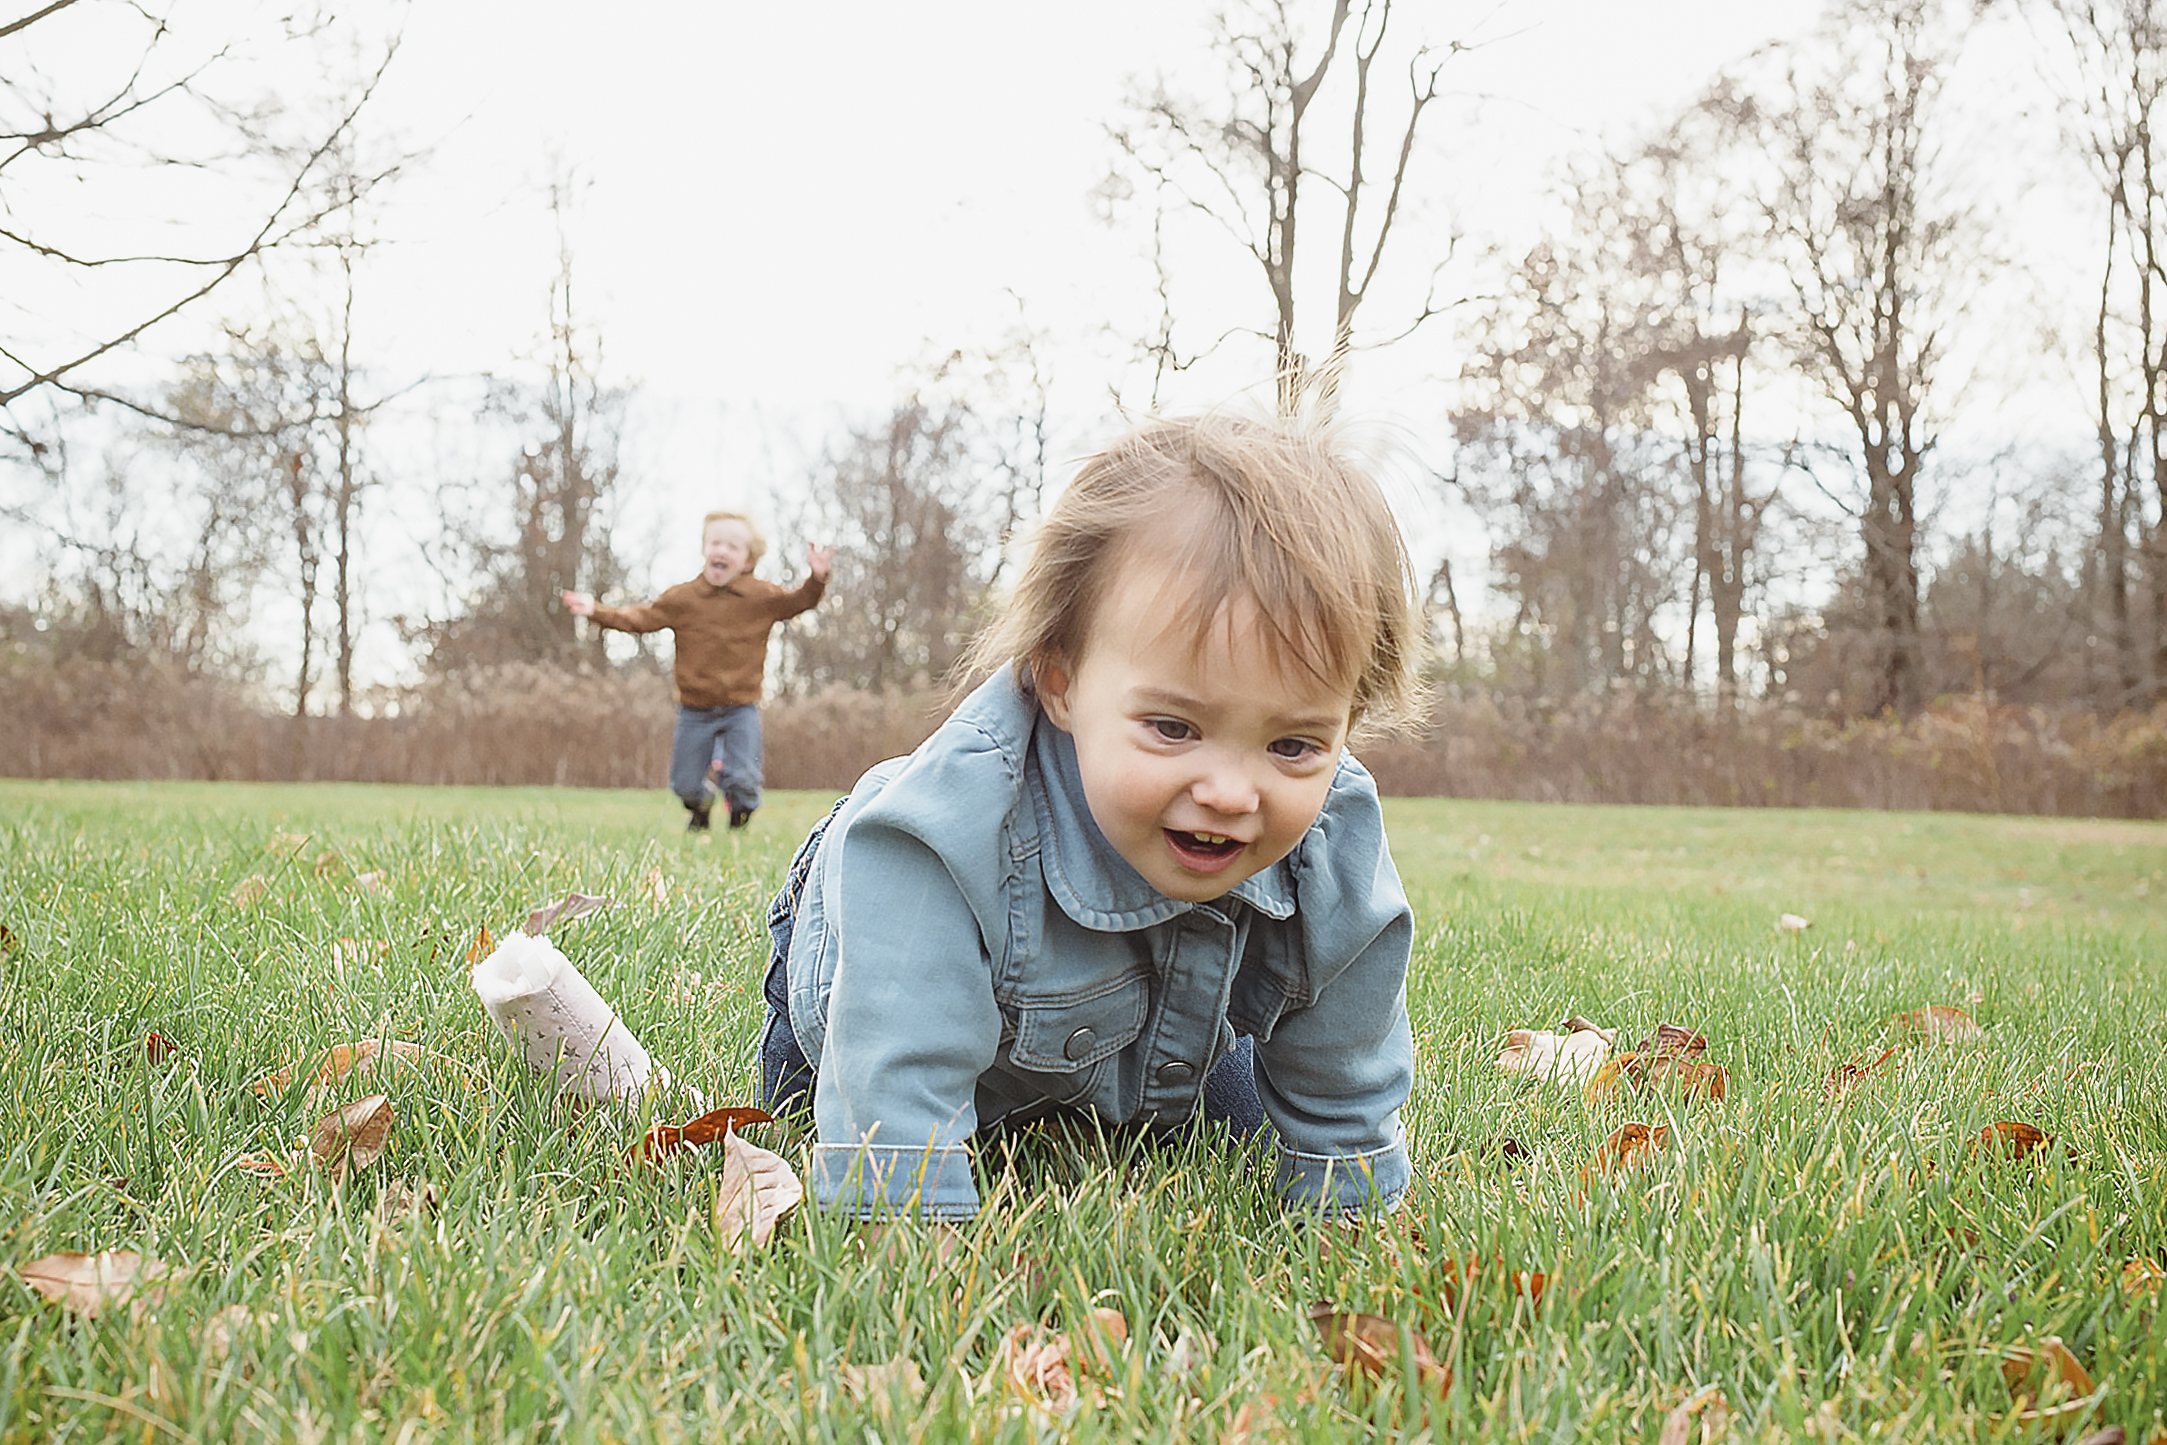 young child crawling through the grass as her brother is running up behind her.jpg